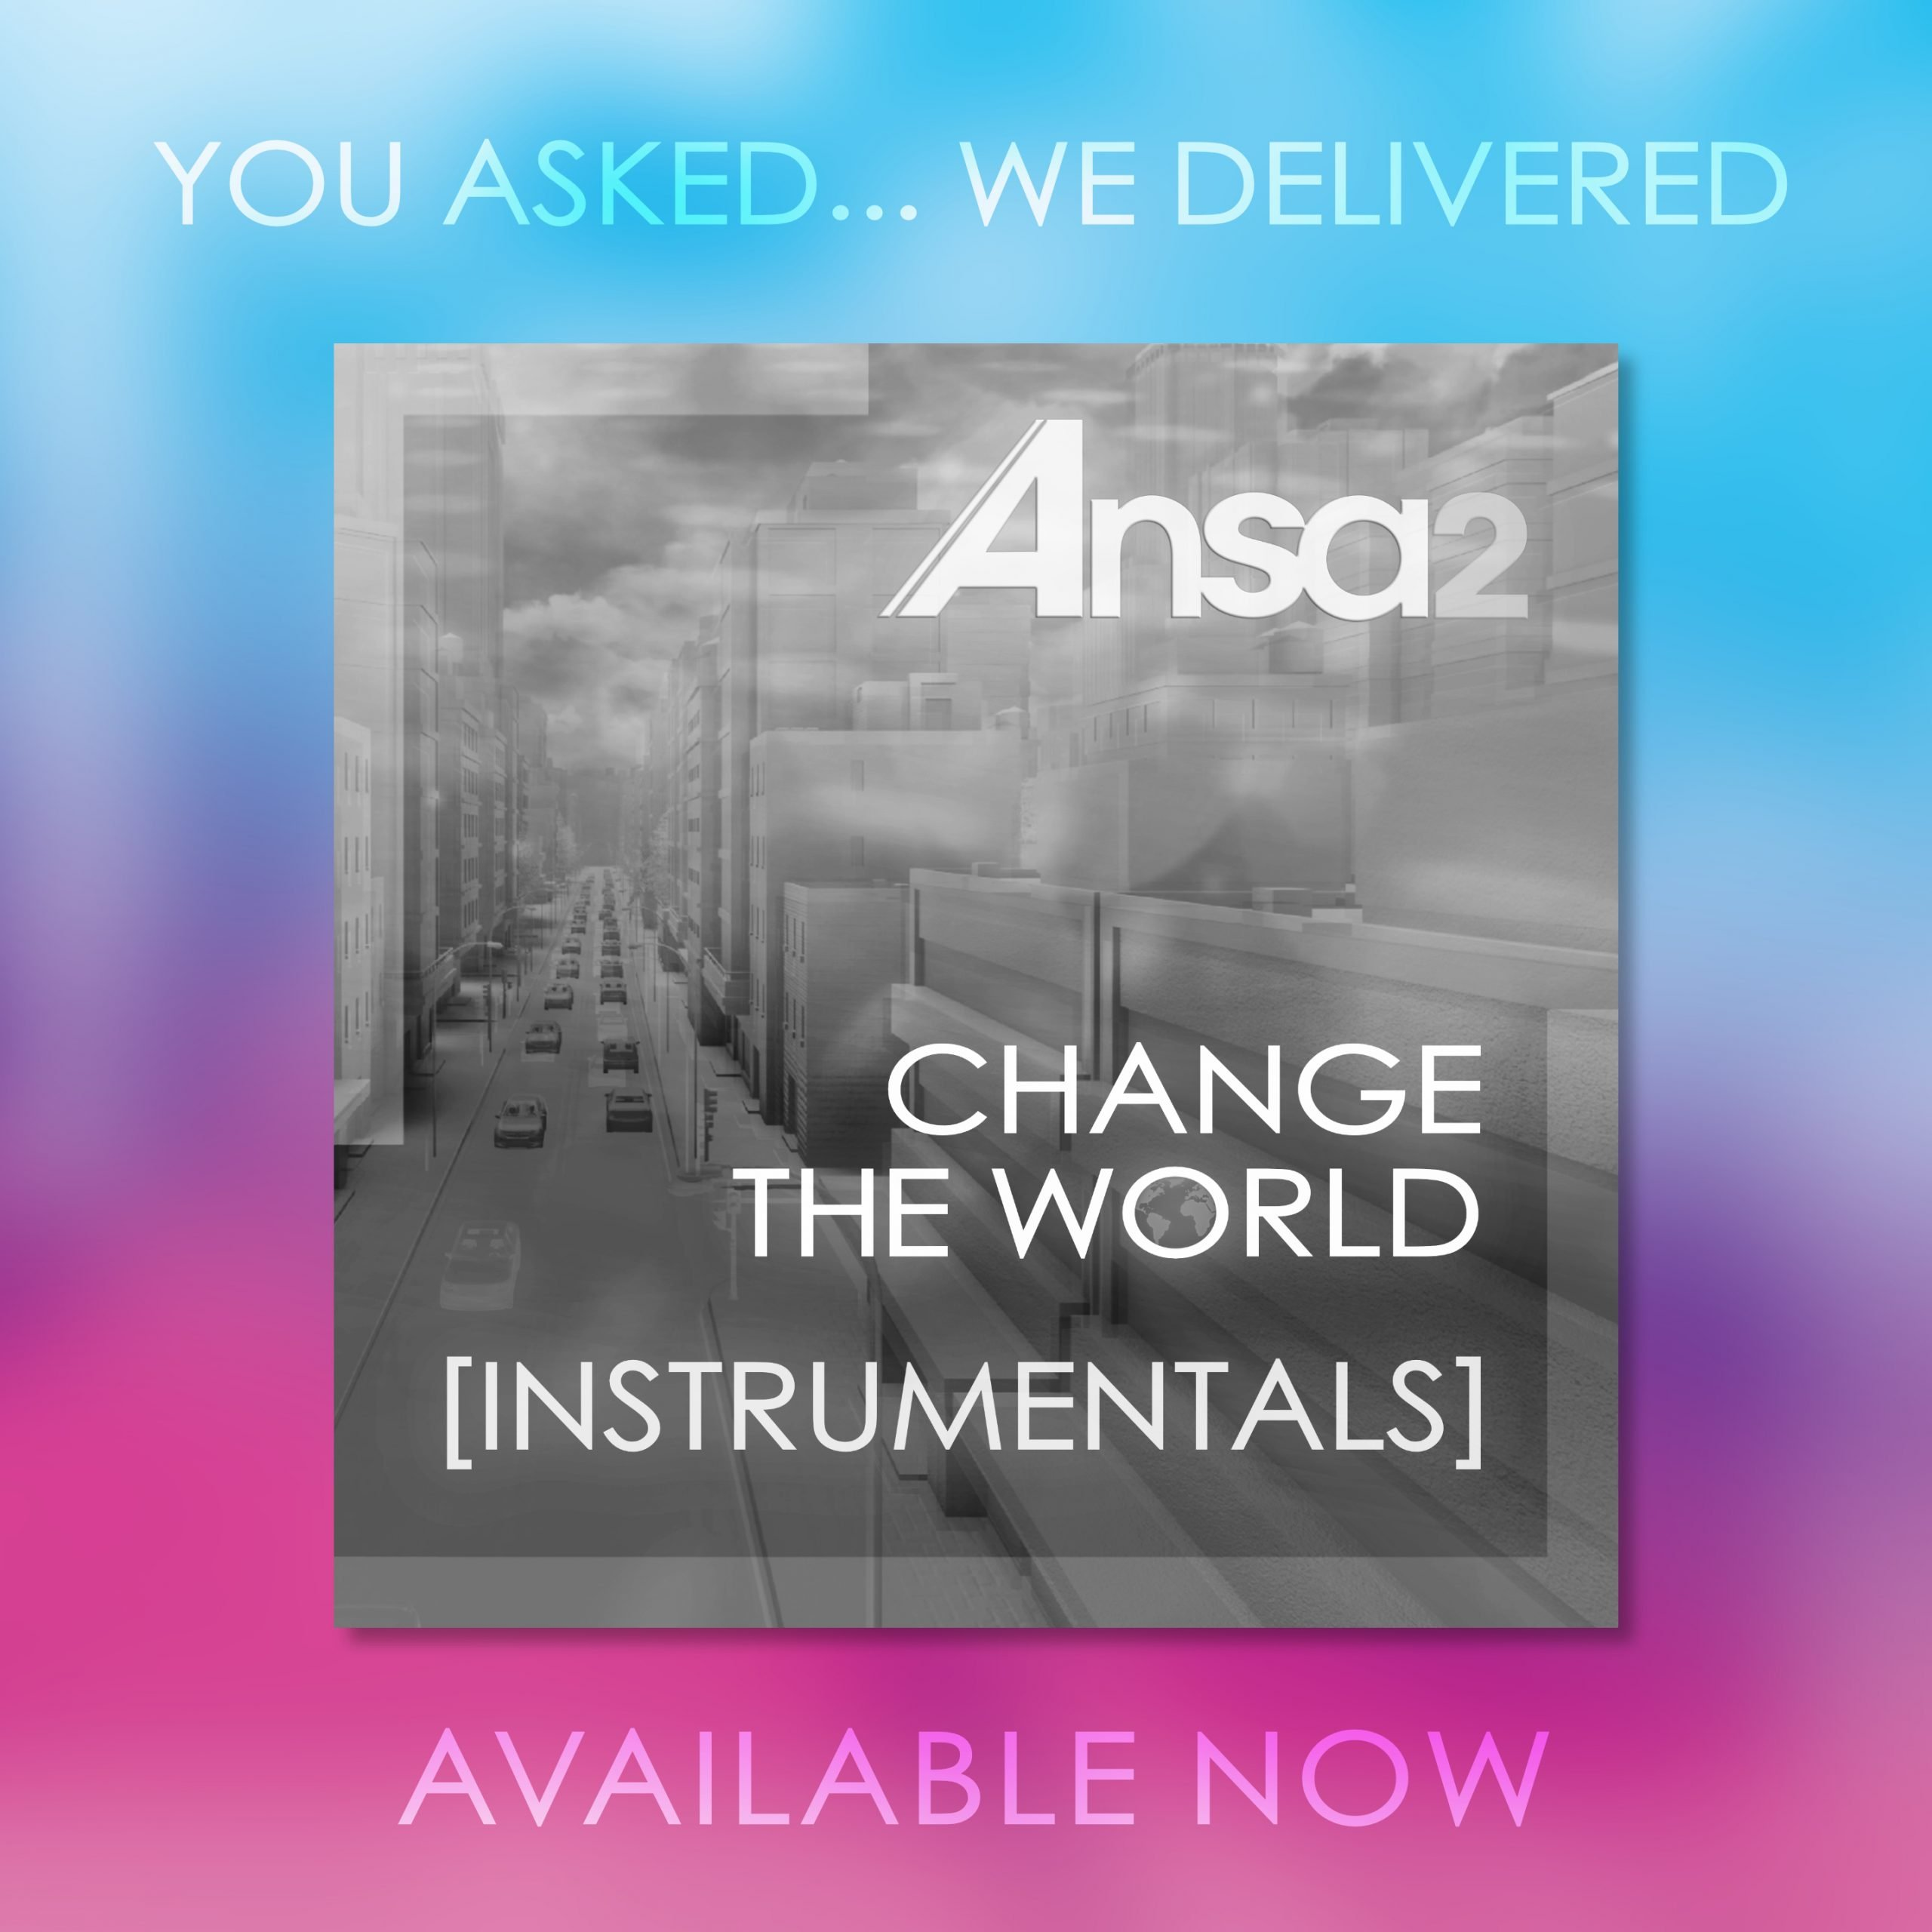 Change the World [Instrumentals]